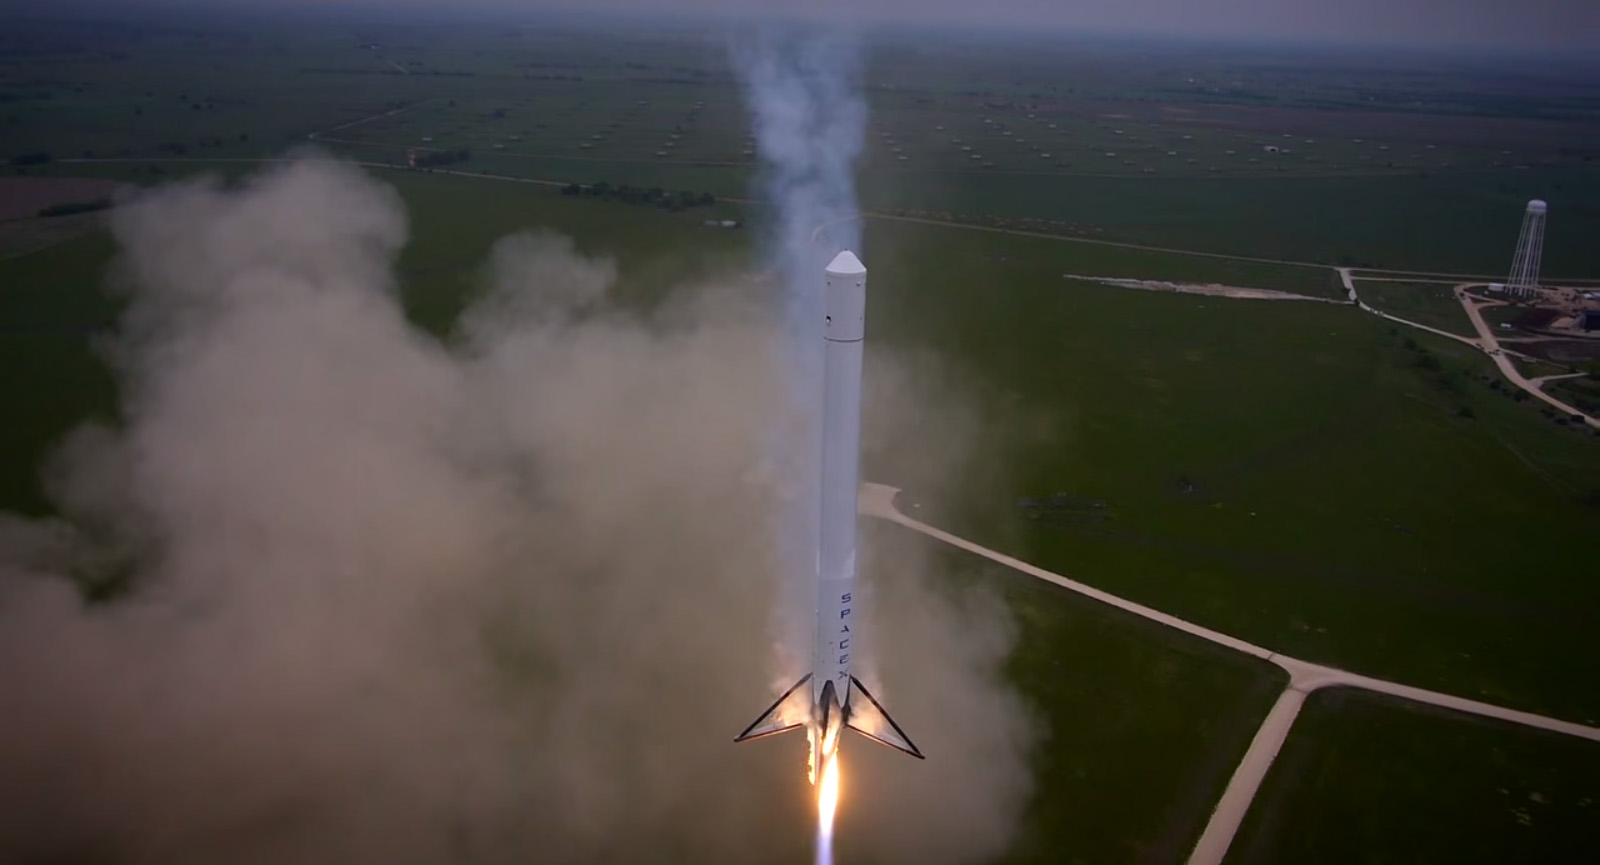 SpaceX Falcon 9 Reusable Rocket Descent